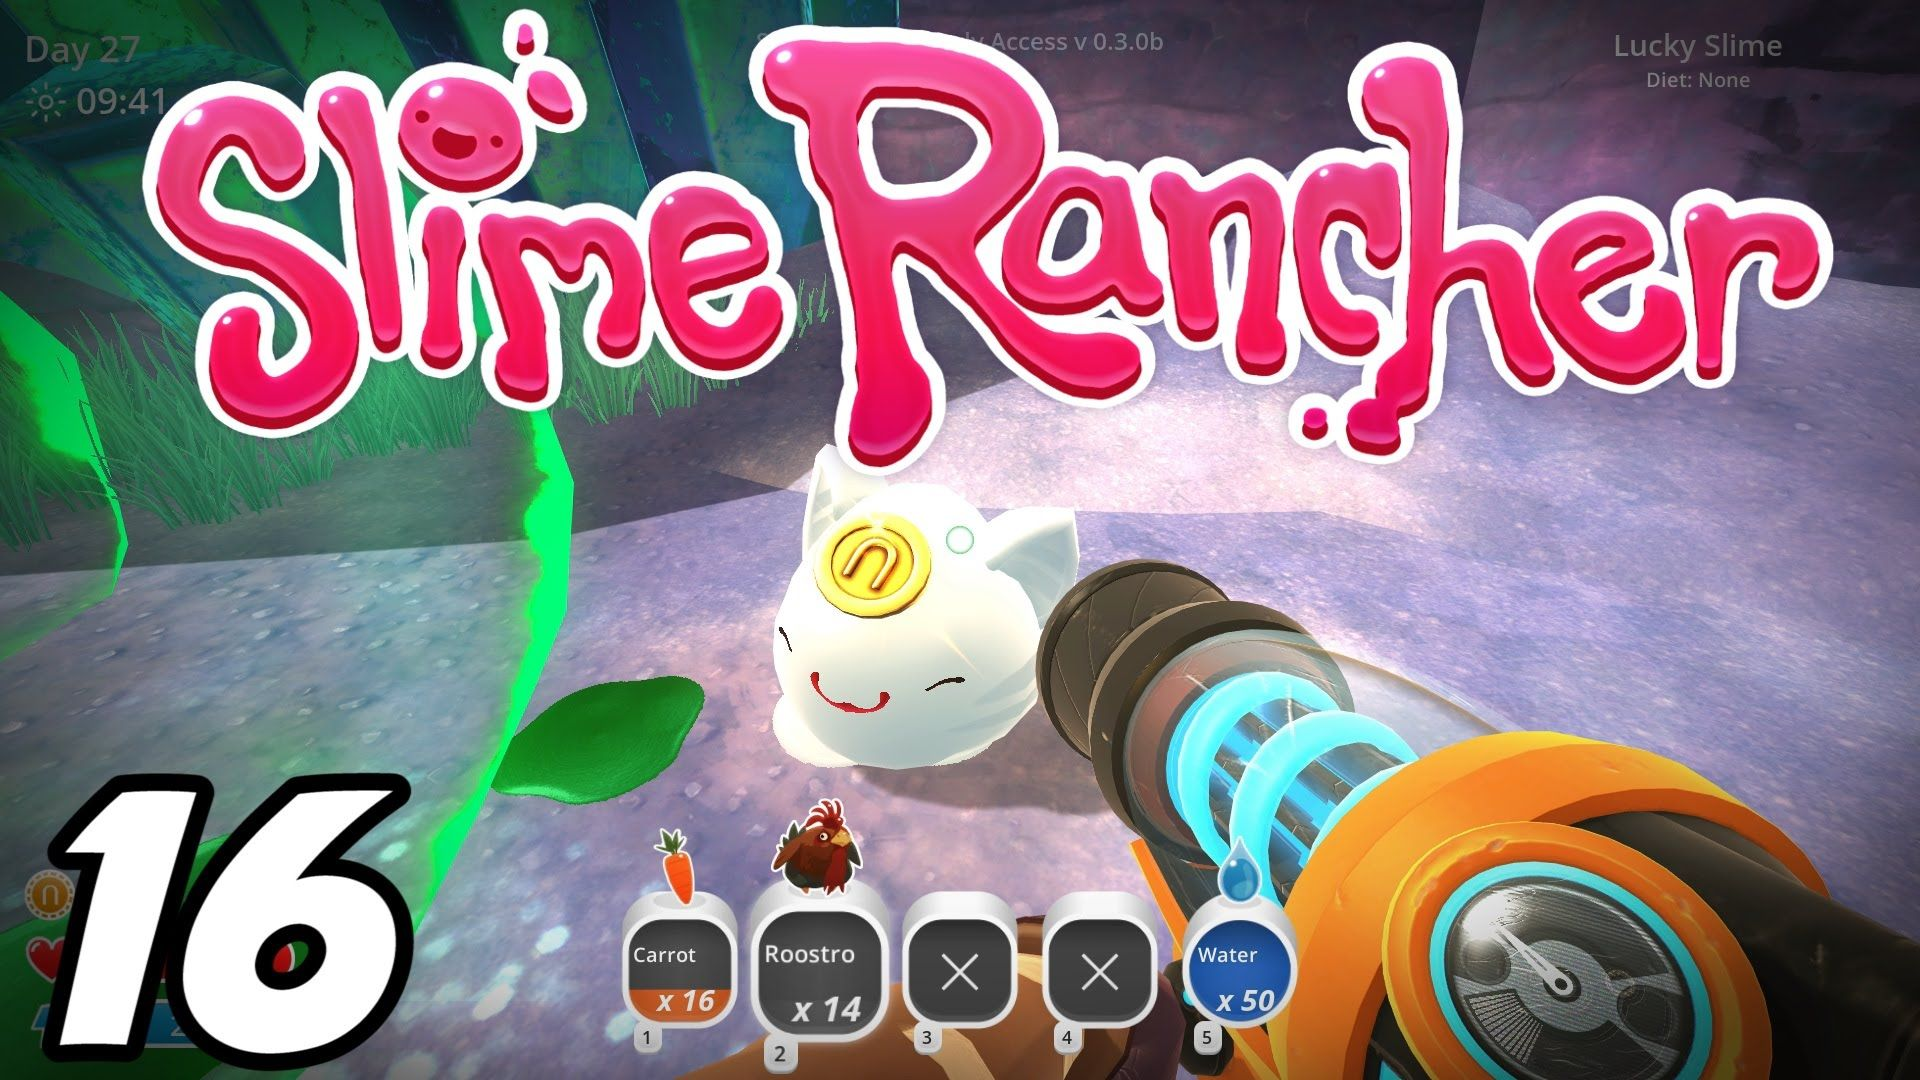 awesome Slime Rancher E16 - Lucky Slime! (Gameplay